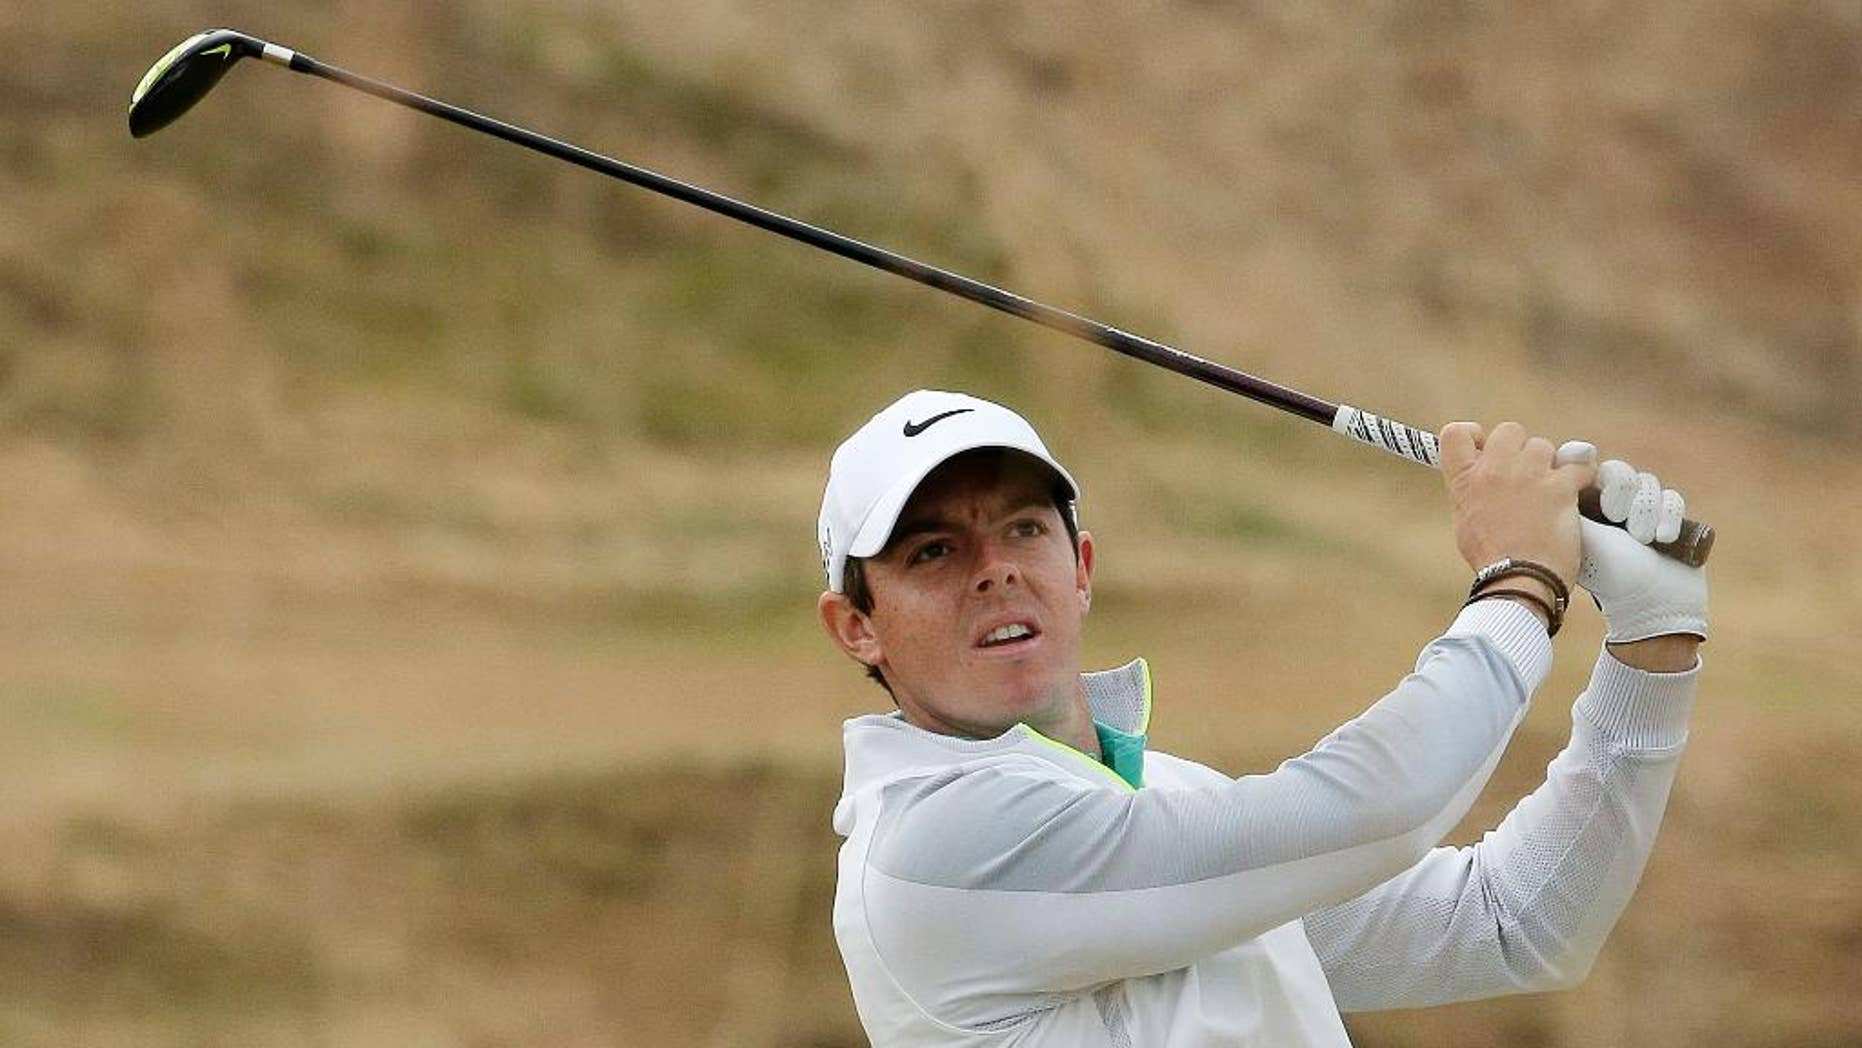 FILE - In this Thursday, June 18, 2015 file photo, Rory McIlroy, of Northern Ireland, watches his tee shot on the 10th hole during the first round of the U.S. Open golf tournament at Chambers Bay in University Place, Wash.  Rory McIlroy posted two videos on Instagram that suggest he might be able to return for the PGA Championship, Thursday, Aug. 6, 2015. (AP Photo/Charlie Riedel, File)